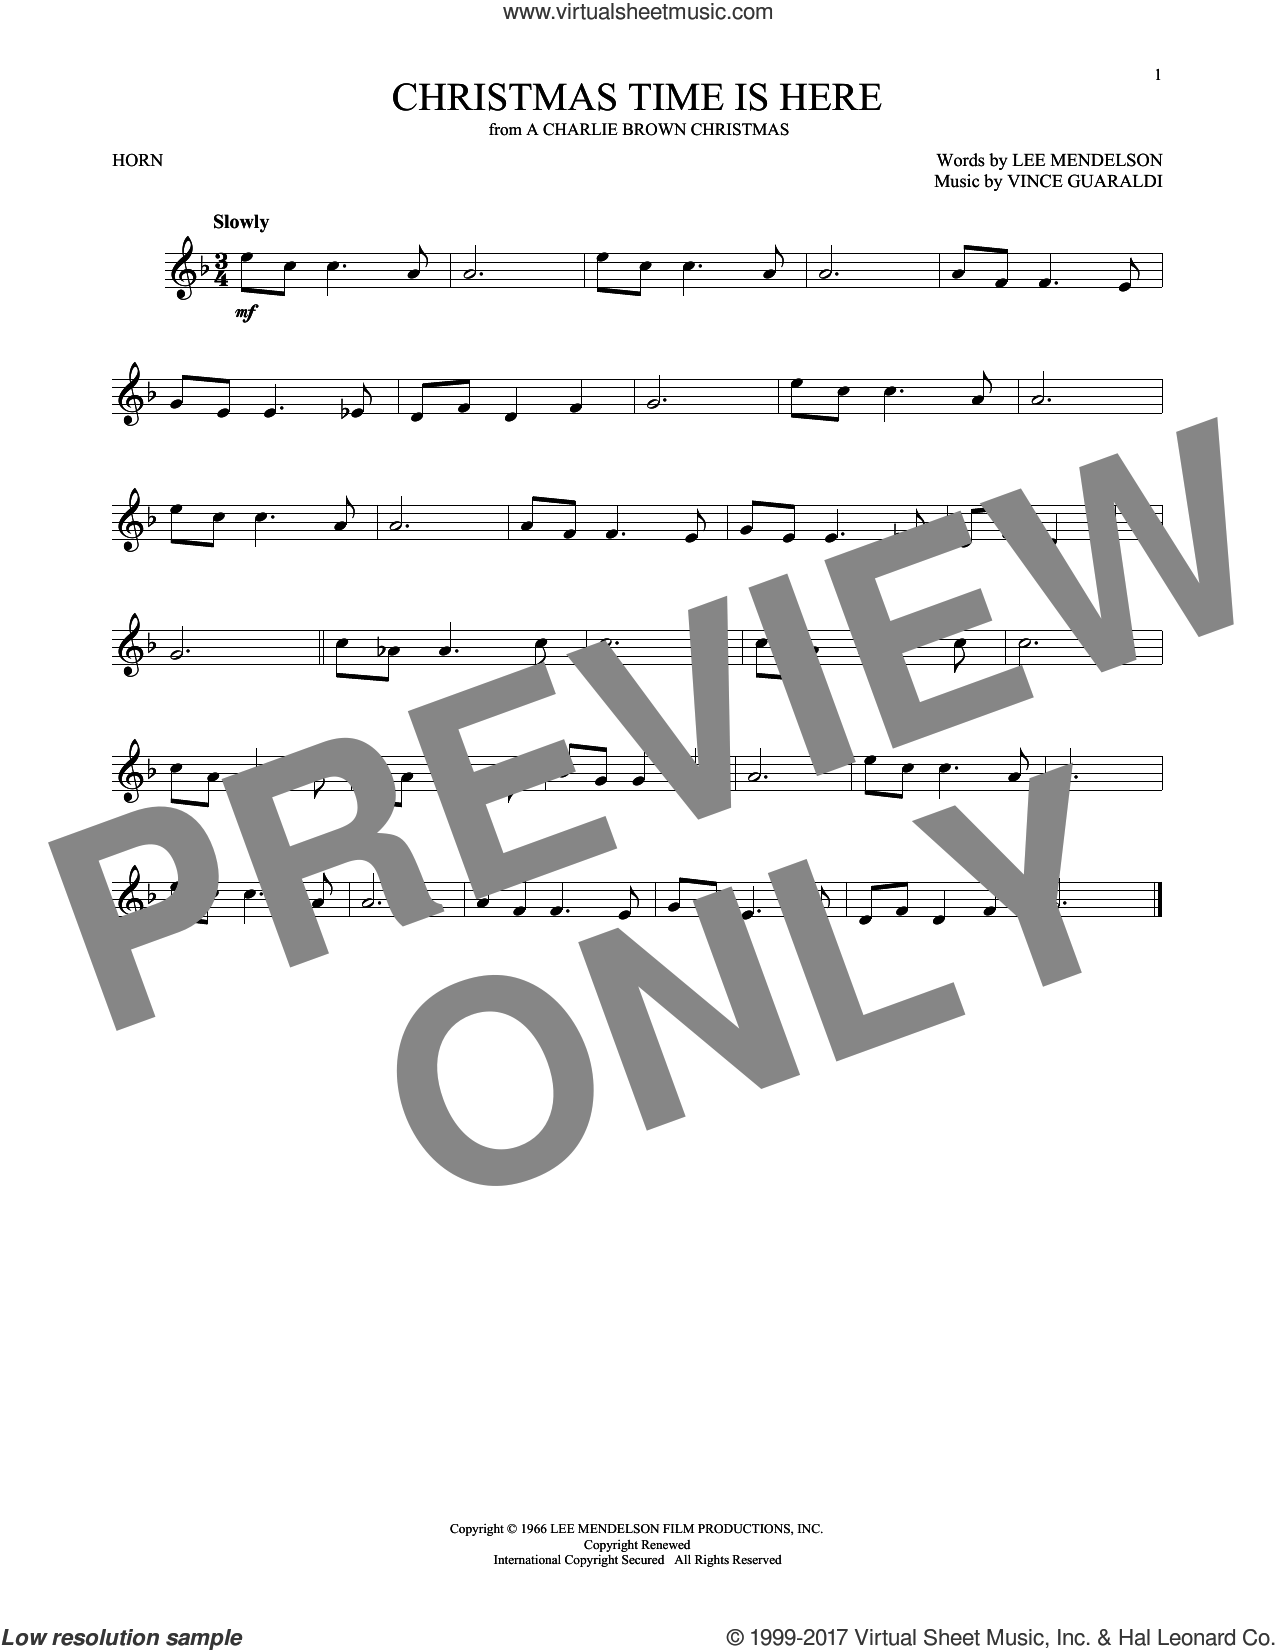 Christmas Time Is Here sheet music for horn solo by Vince Guaraldi and Lee Mendelson, intermediate skill level